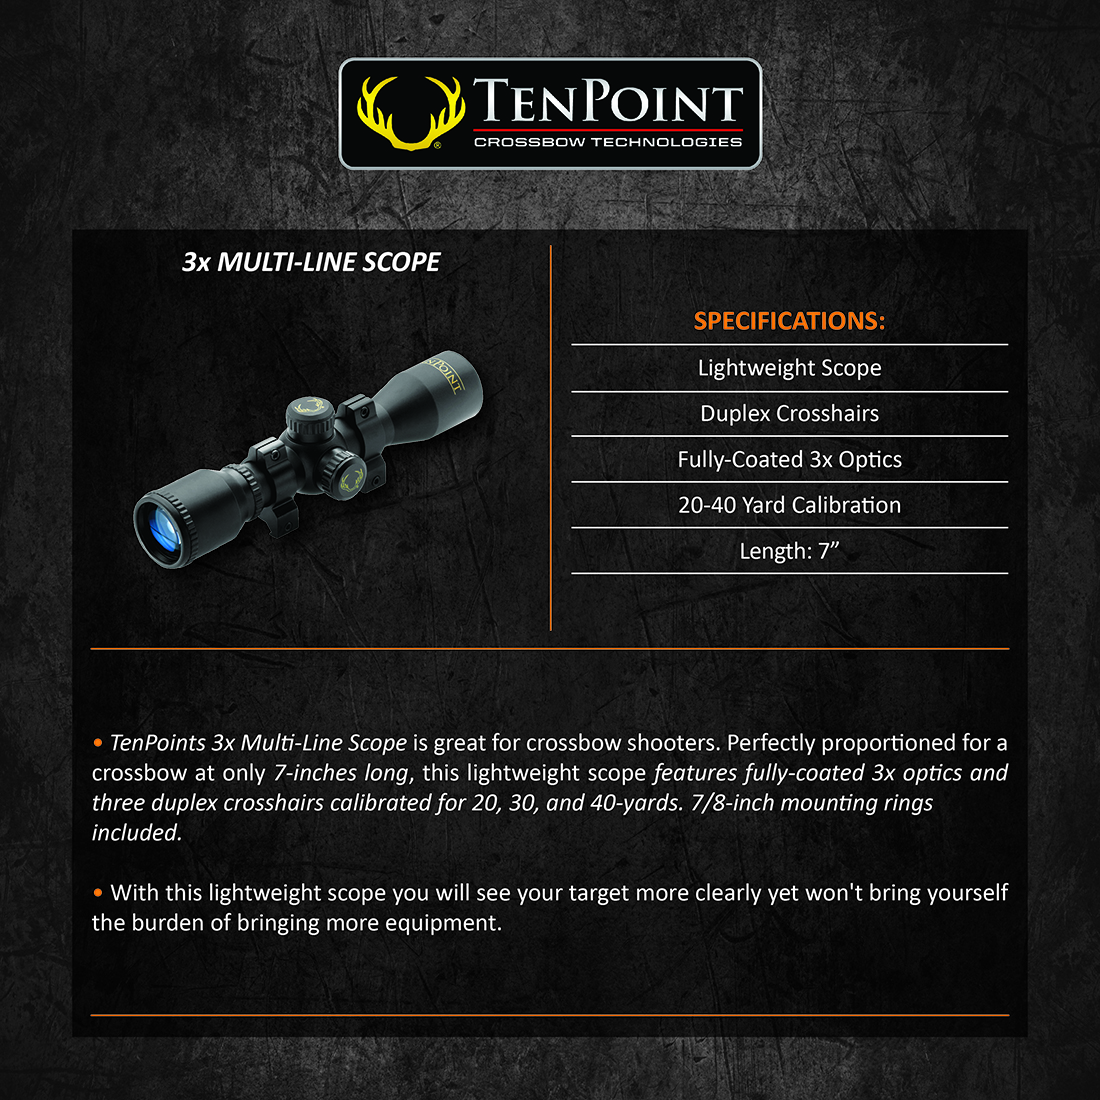 TenPoint_3x_Multi_Line_Scope_Product_Description